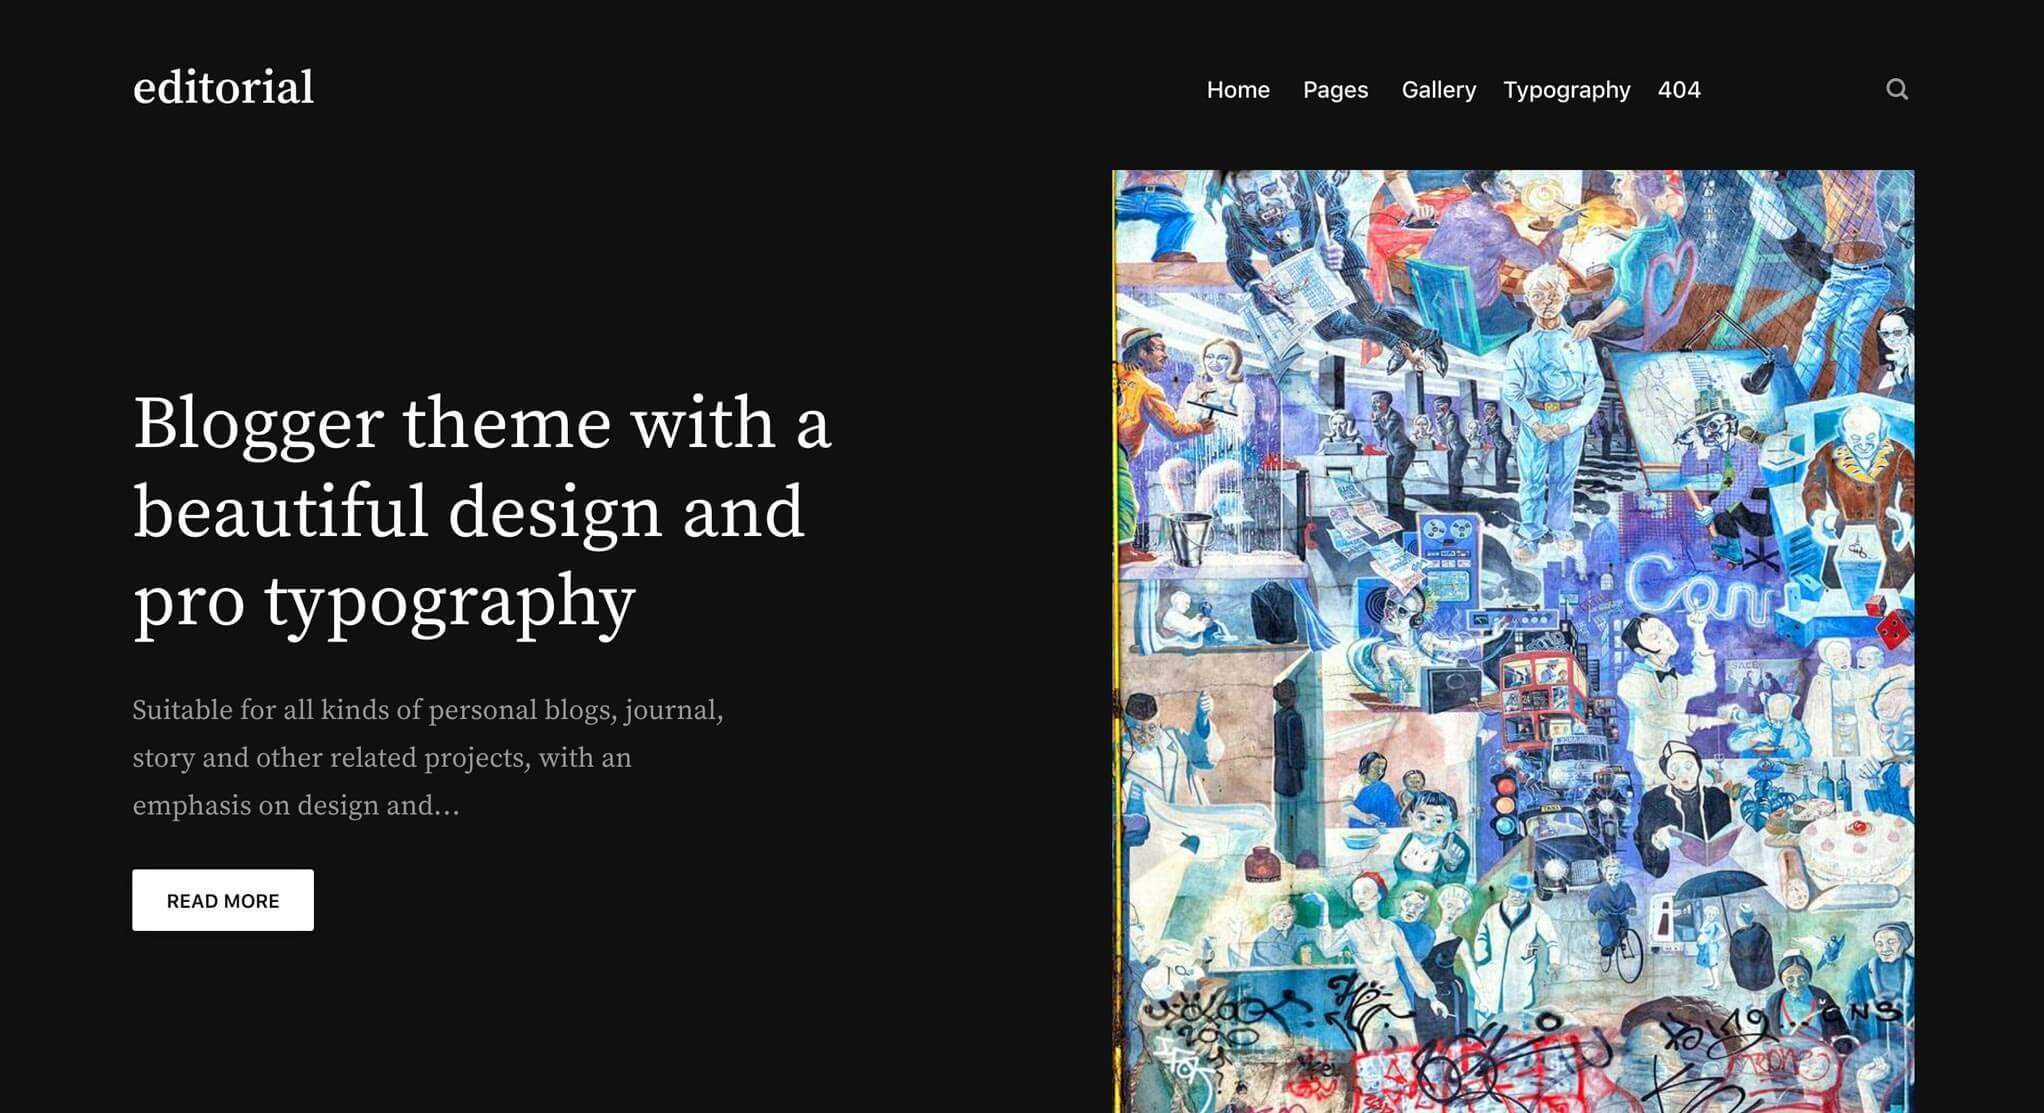 Editorial theme hero section with slider